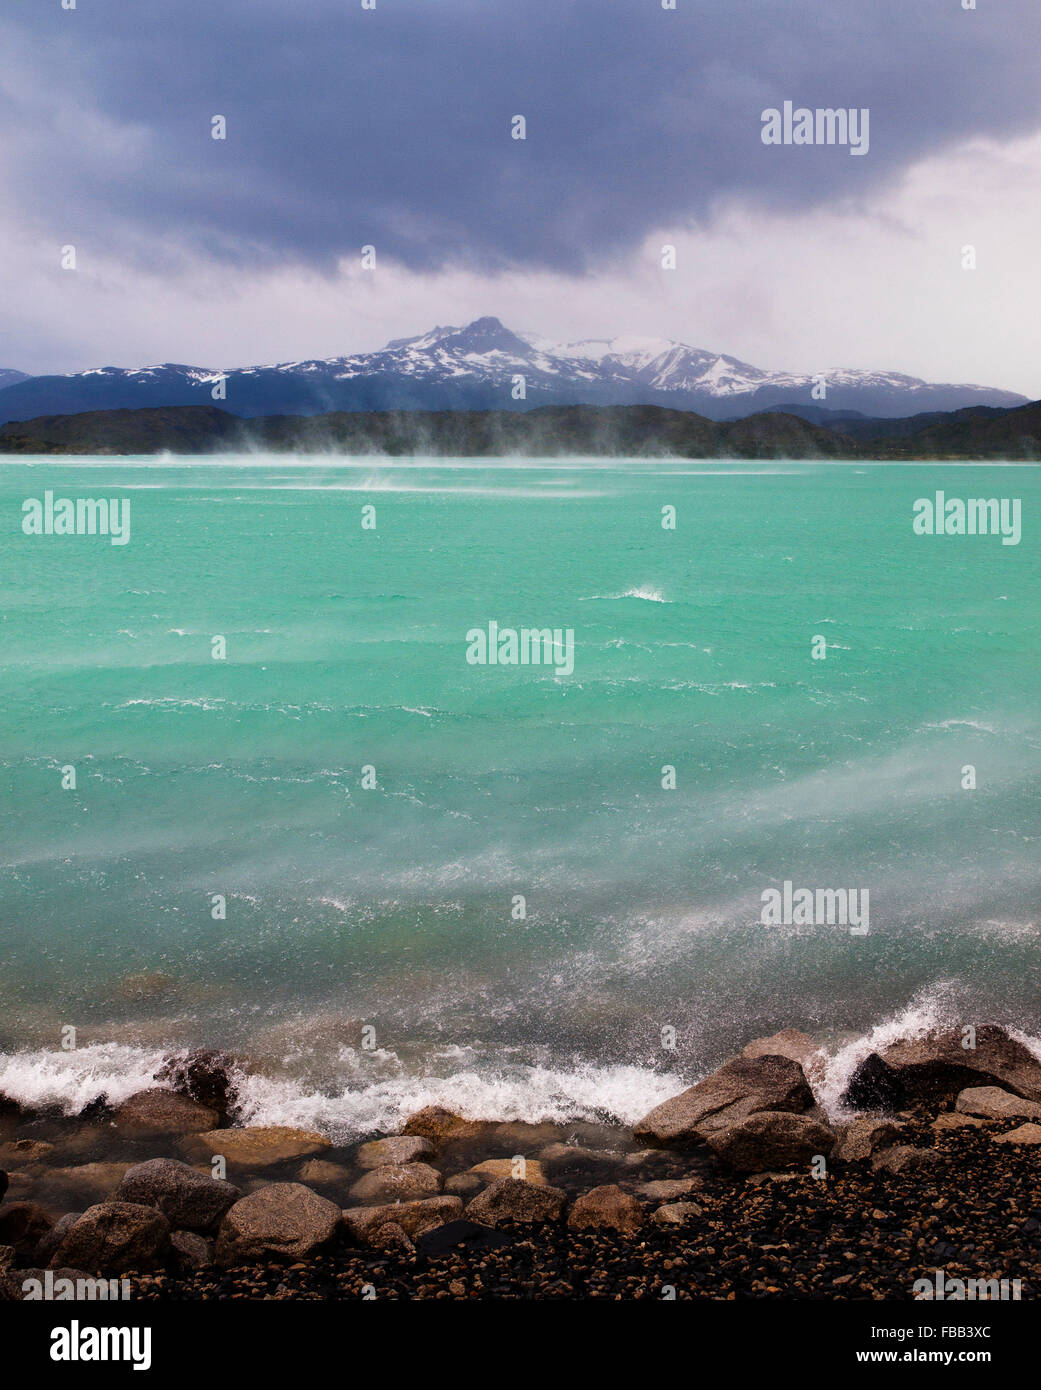 Extreme wind on lake, Torres Del Paine, Patagonia - Stock Image